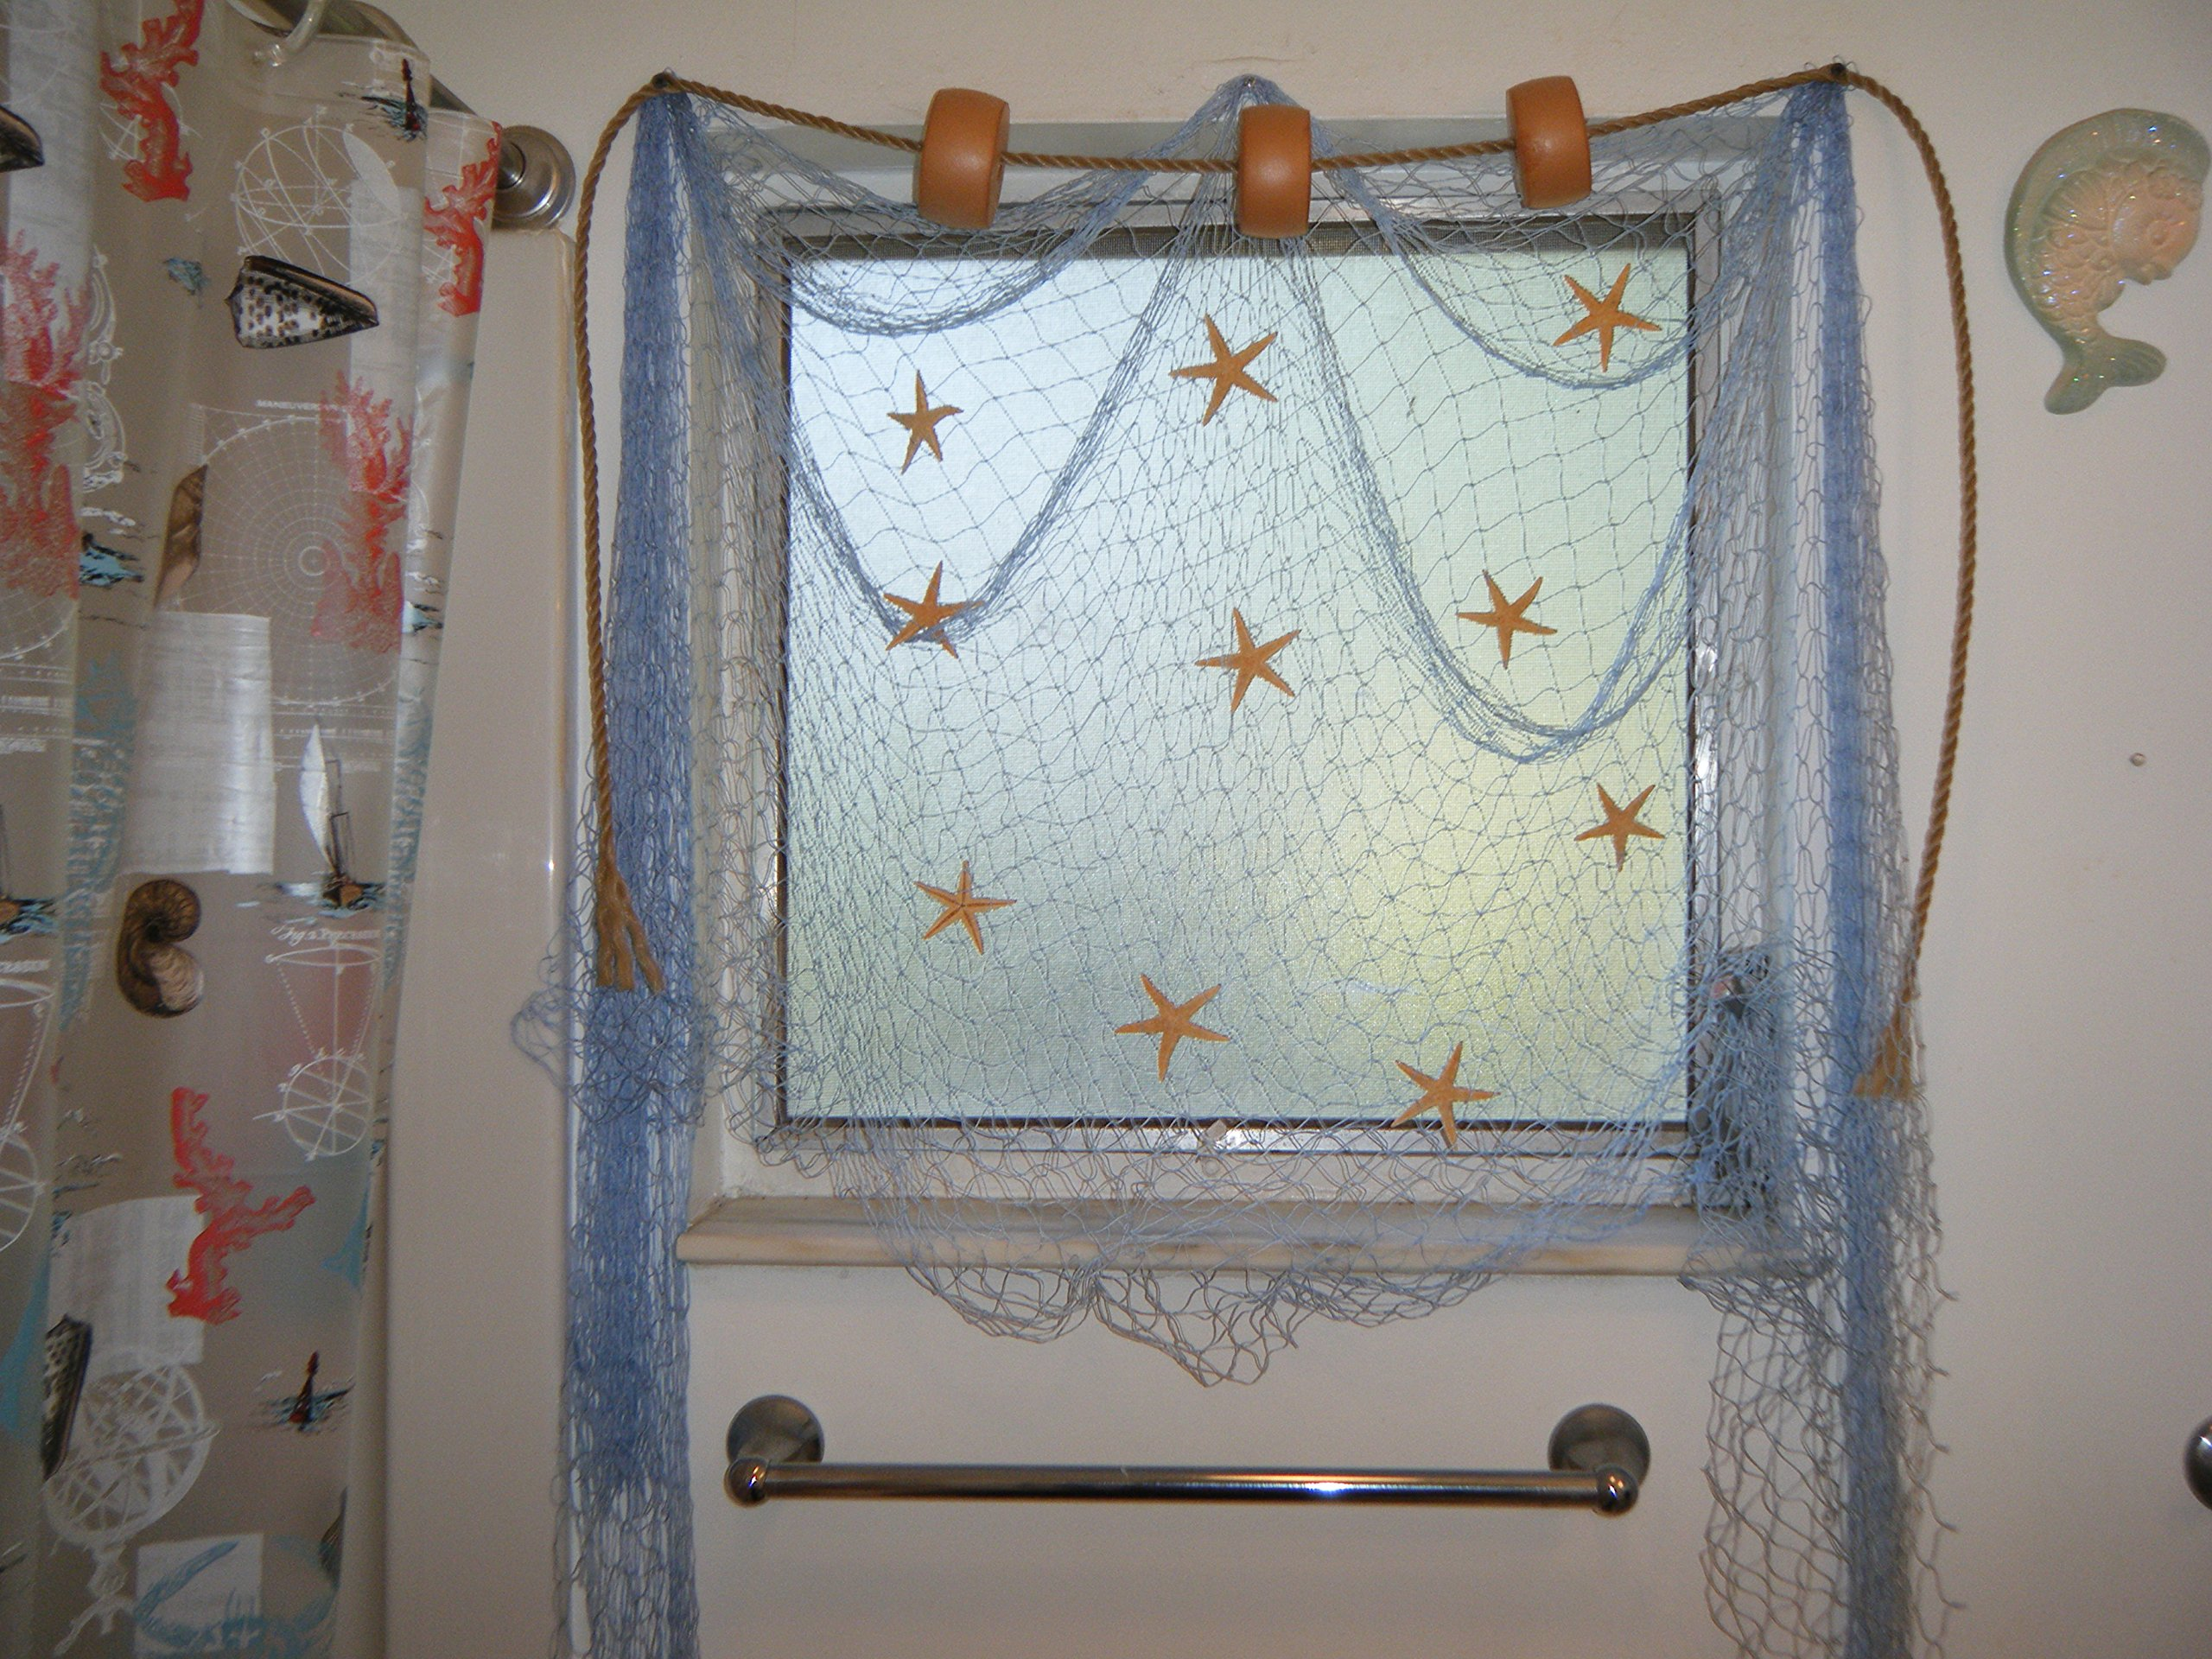 10 X 8 Fishing Net, Fish Netting, Nautical Decor,valance, Drapes, Window Treatement